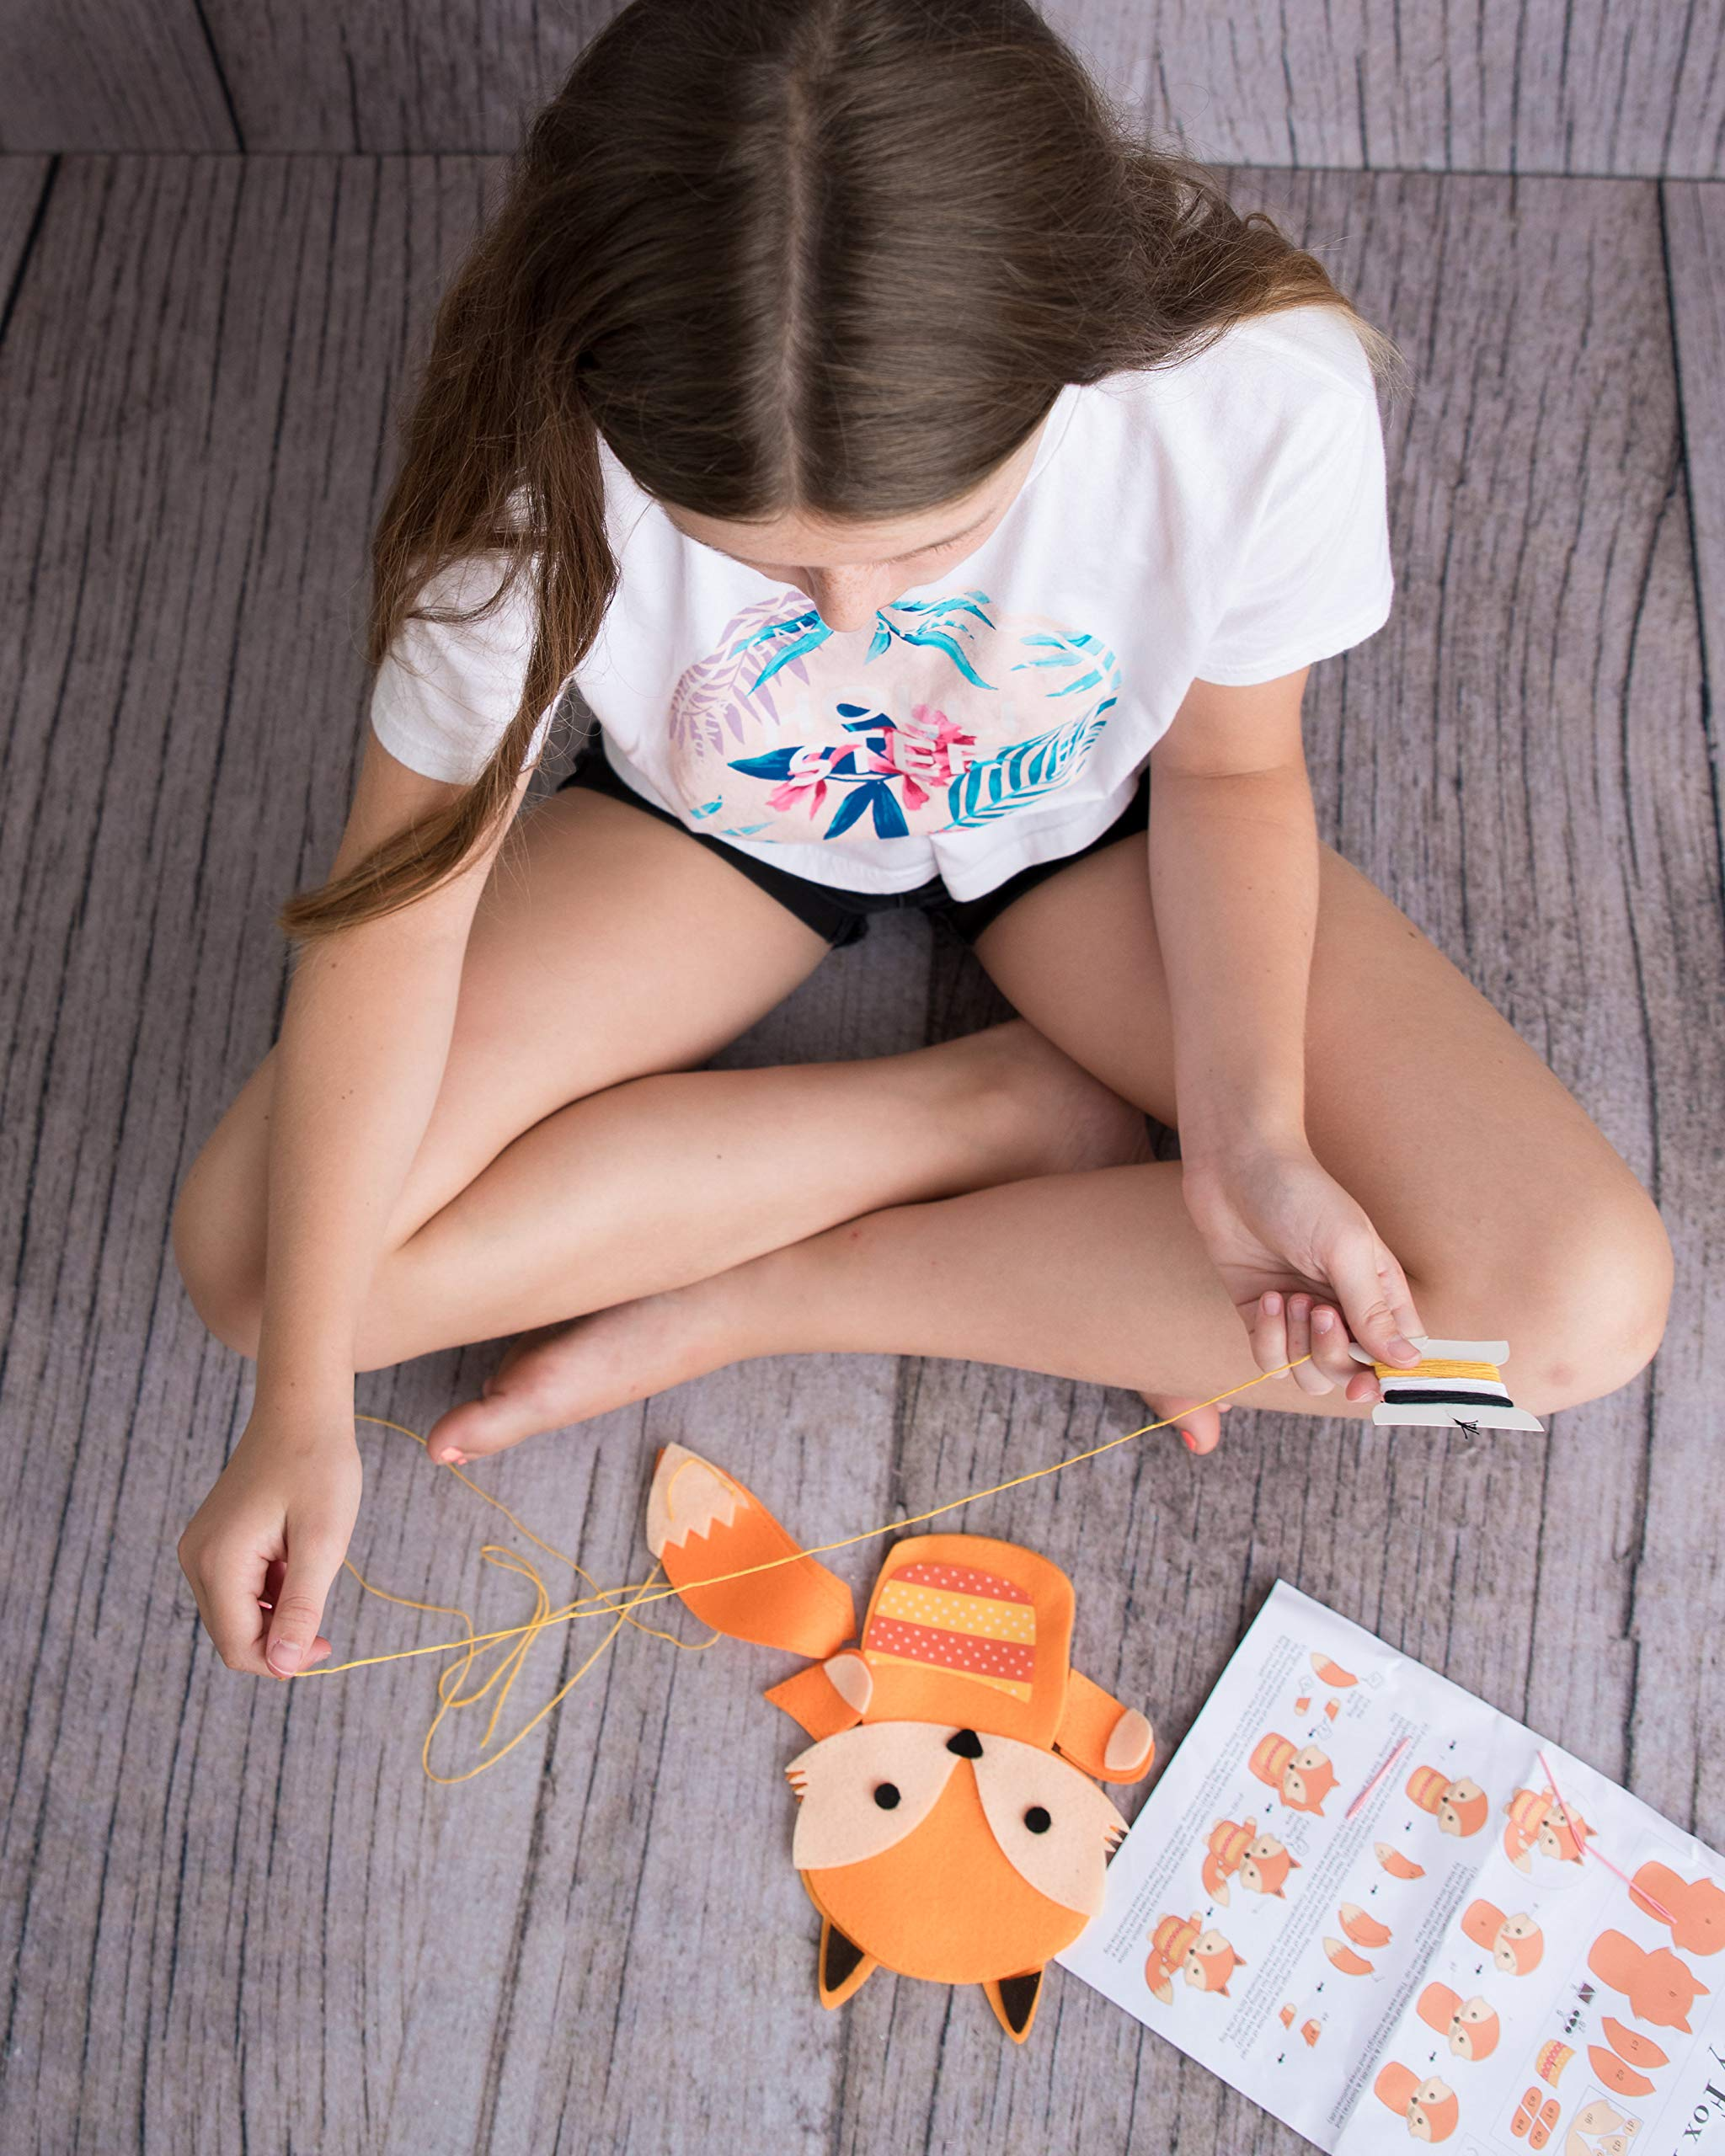 Kids Sewing Crafts Kits For Girls : Beginners Arts And Craft Kit Plush Fox Animal Mini Sew And Stuff Toy Learn Enjoy Have Fun With Endless Play - Create Memories That Last With This Fox Family